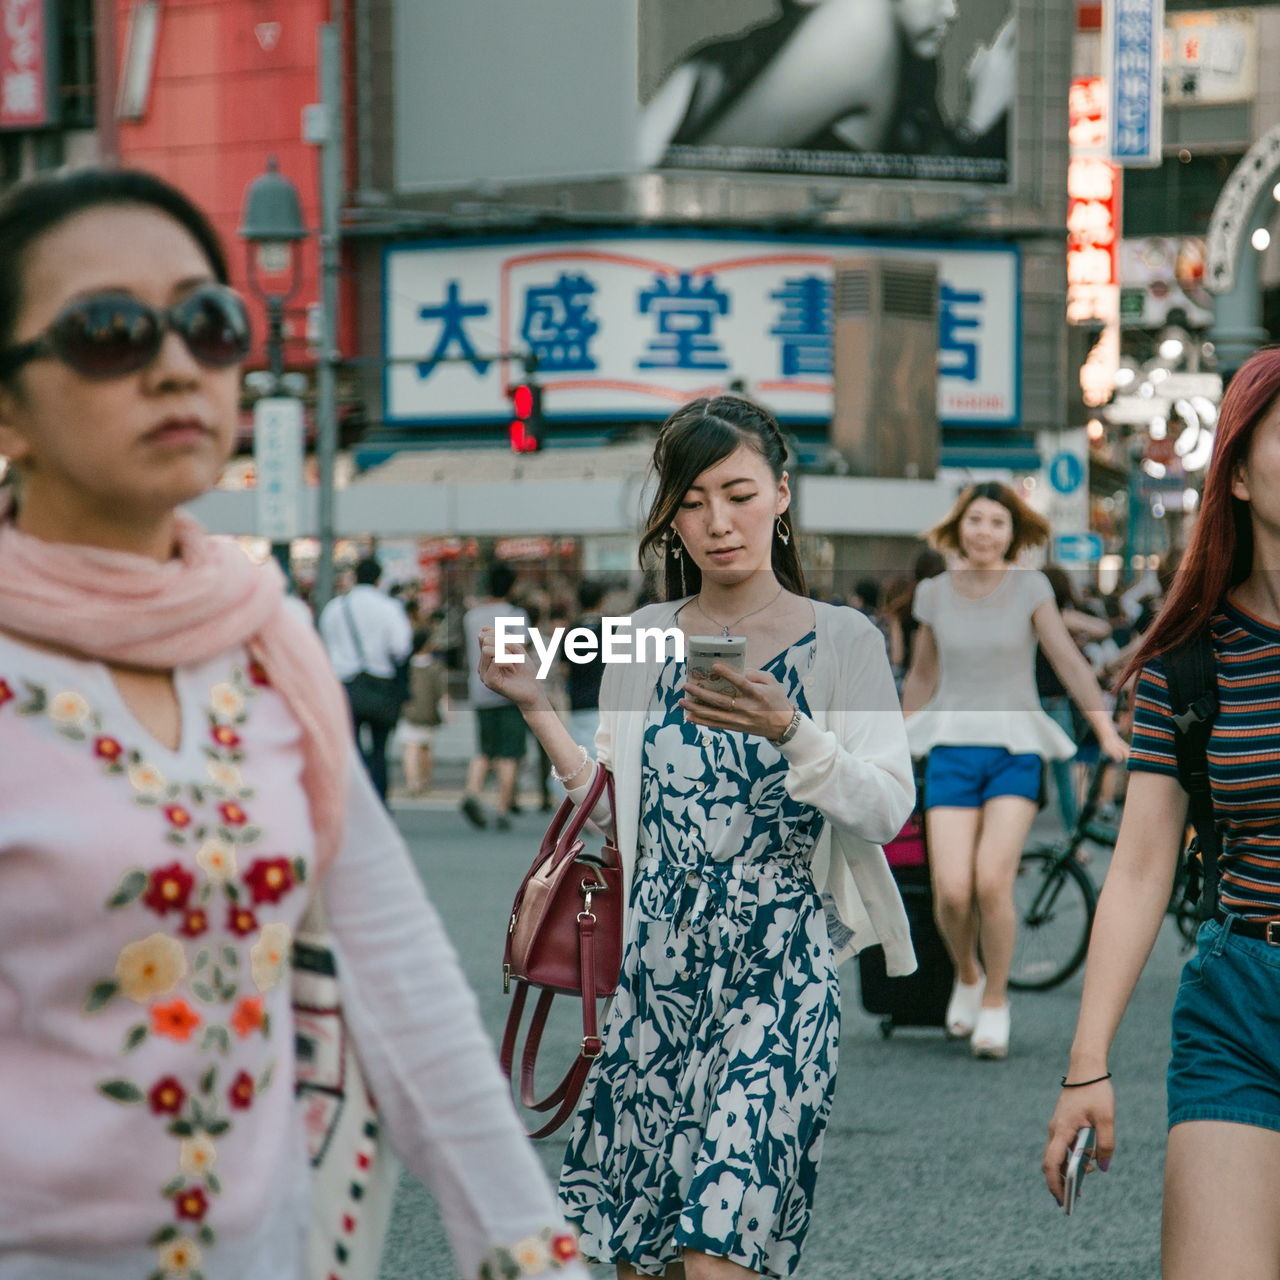 sunglasses, incidental people, real people, casual clothing, outdoors, store, street, day, fashion, young women, city, retail, building exterior, standing, lifestyles, women, young adult, smiling, one person, adult, people